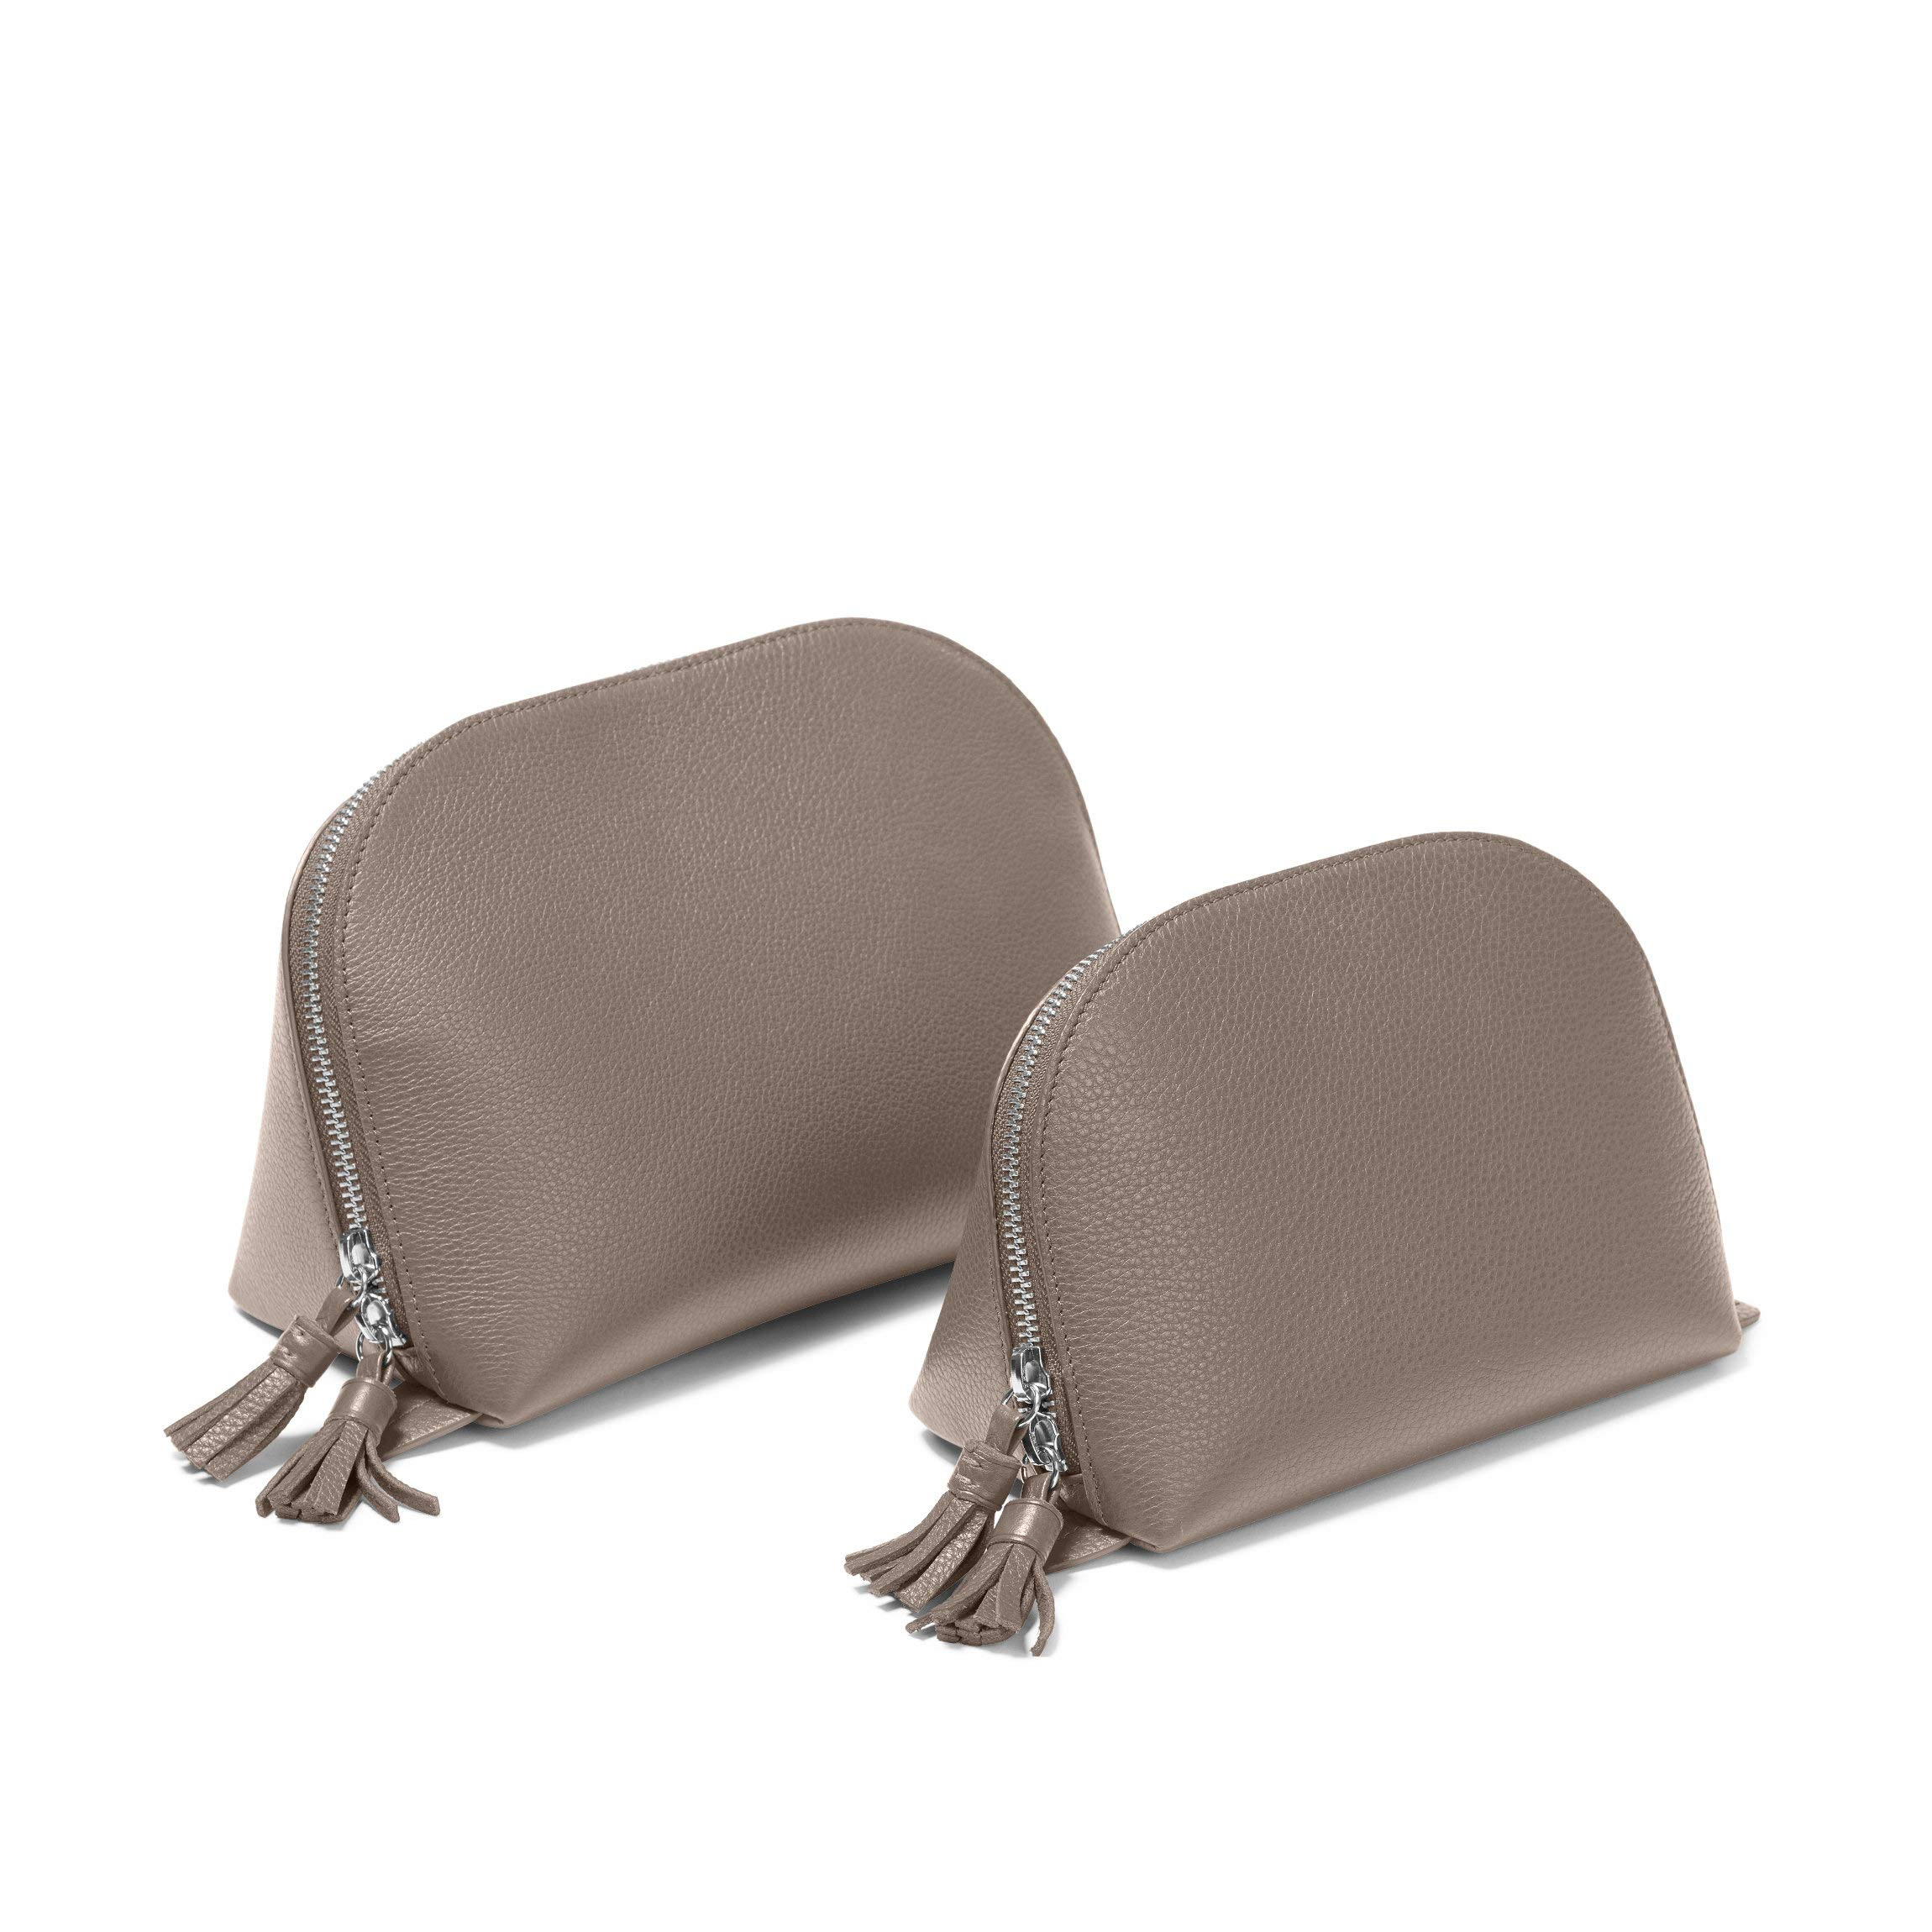 Clamshell Makeup Bag Set - Full Grain Leather Leather - Taupe (Beige) by Leatherology (Image #2)